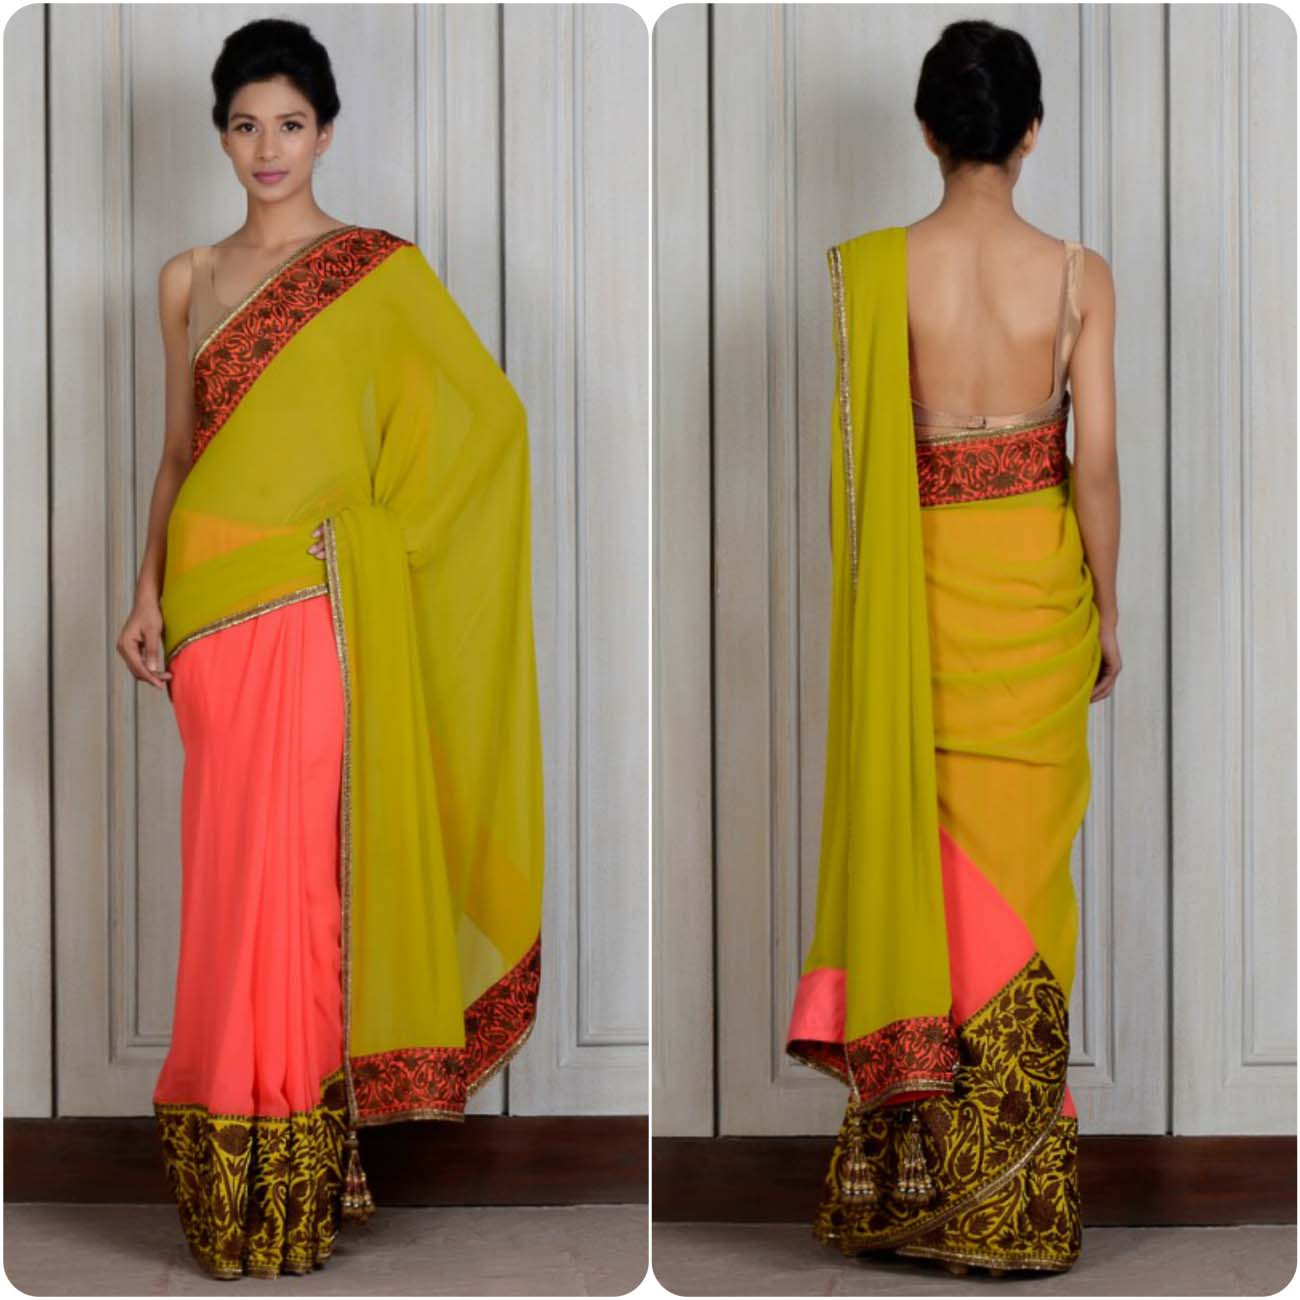 Manish Malhotra Designers Saree Collection 2016-2017...styloplanet (24)